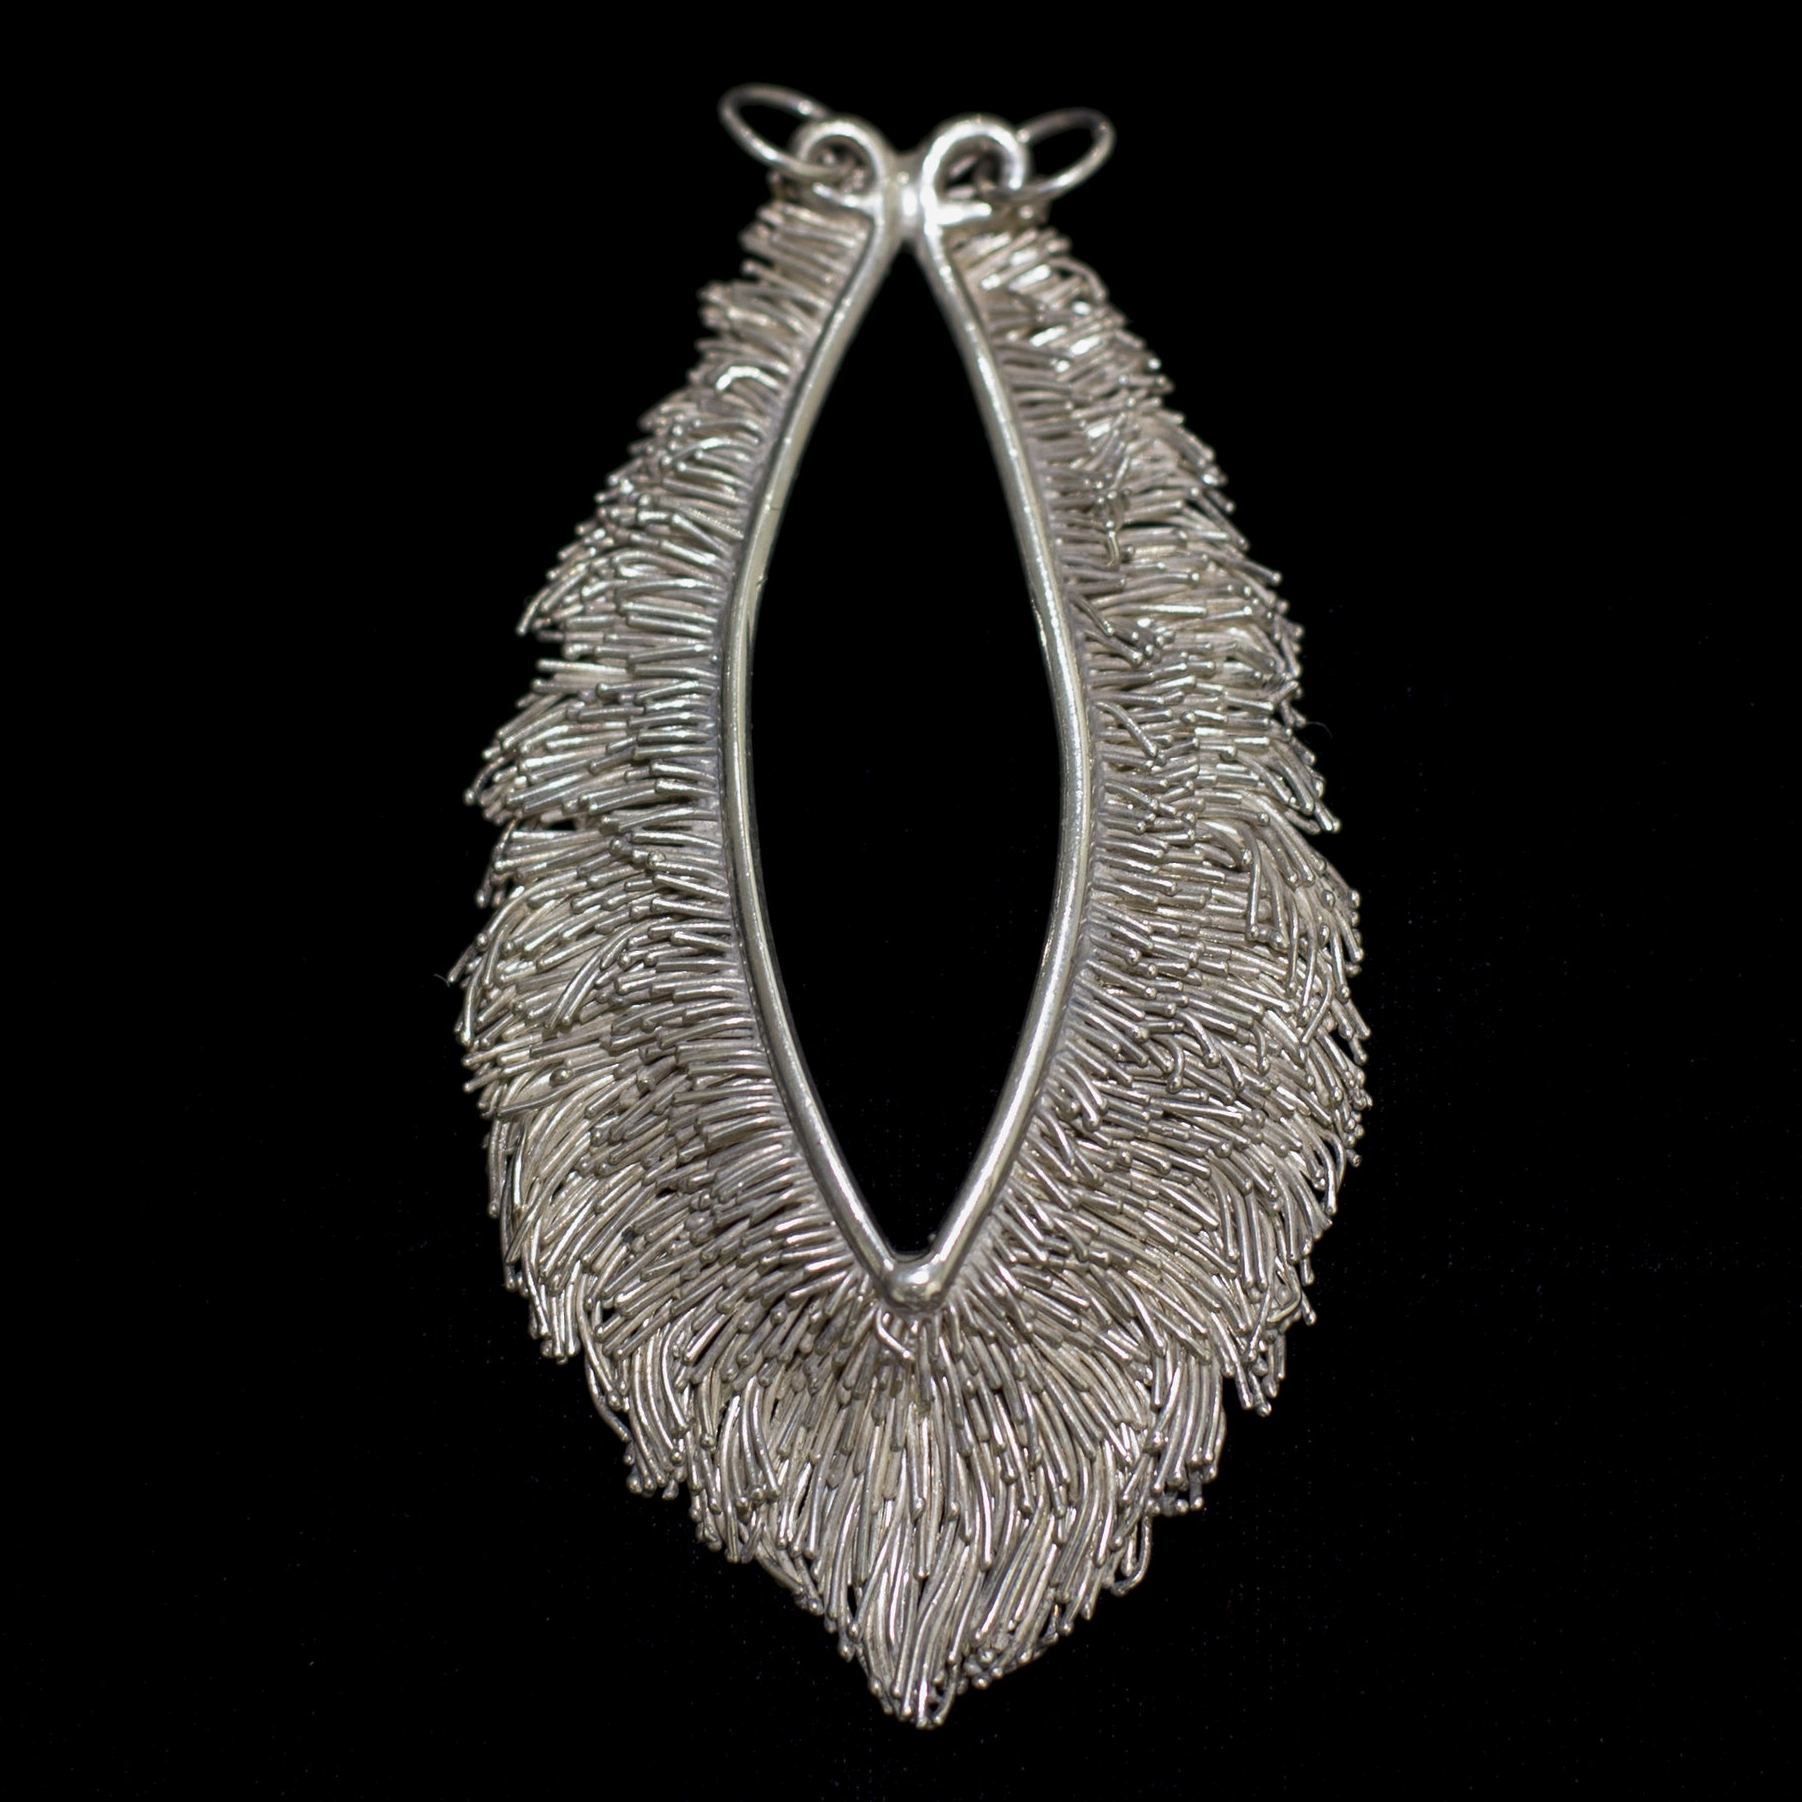 """Untitled"" by Michael Malpass, circa 1973-74. silver jewelry. (photo: Tina Collella)"